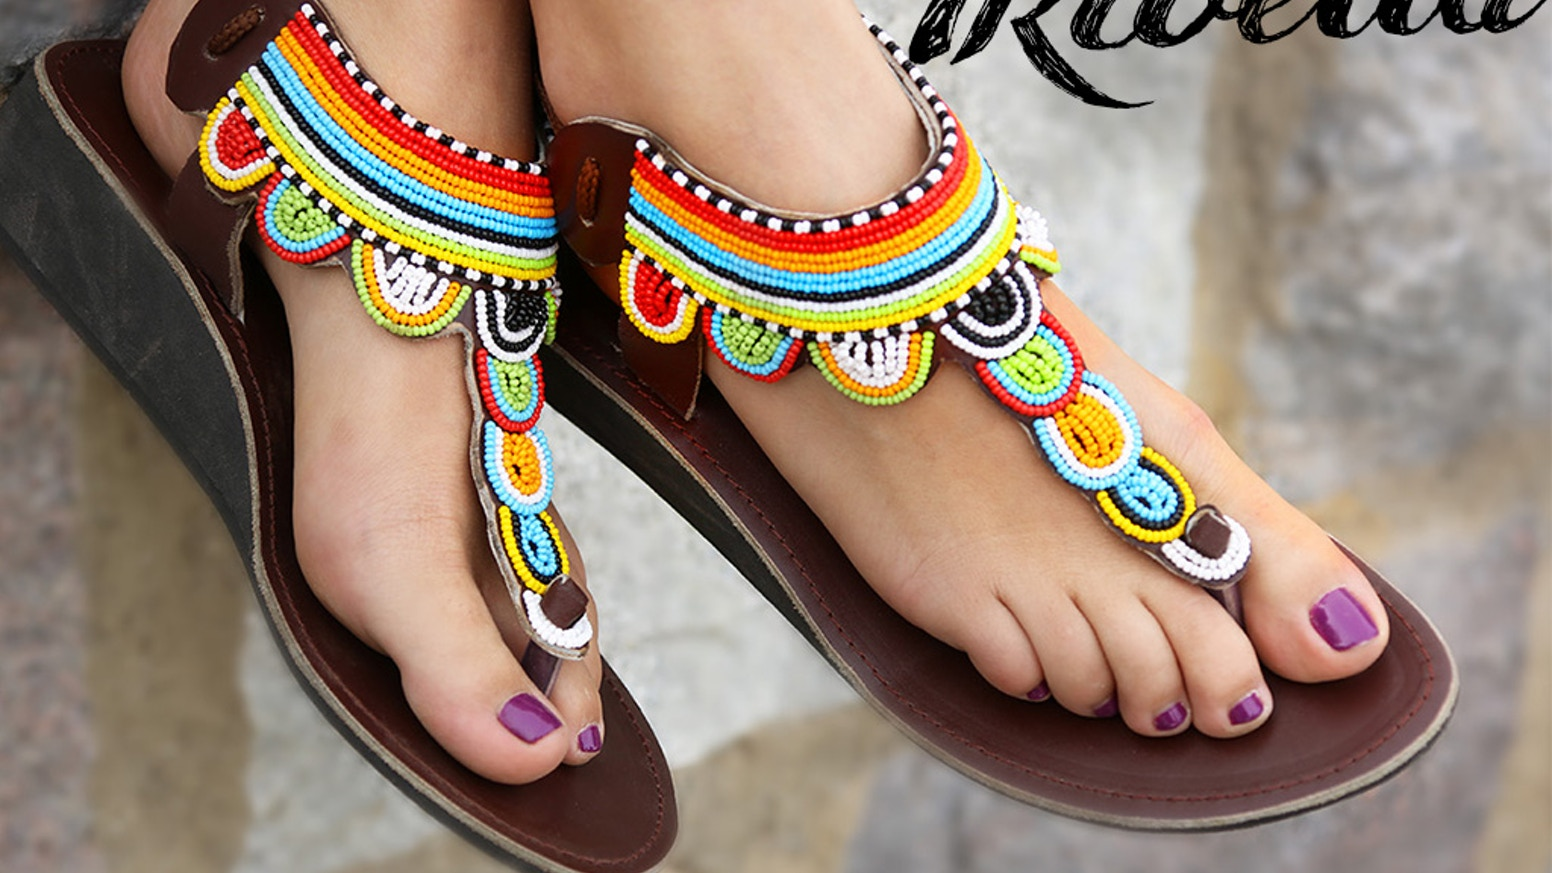 f62320a82 Ikwetta - African Handmade Leather Sandals and Belts by Leela ...